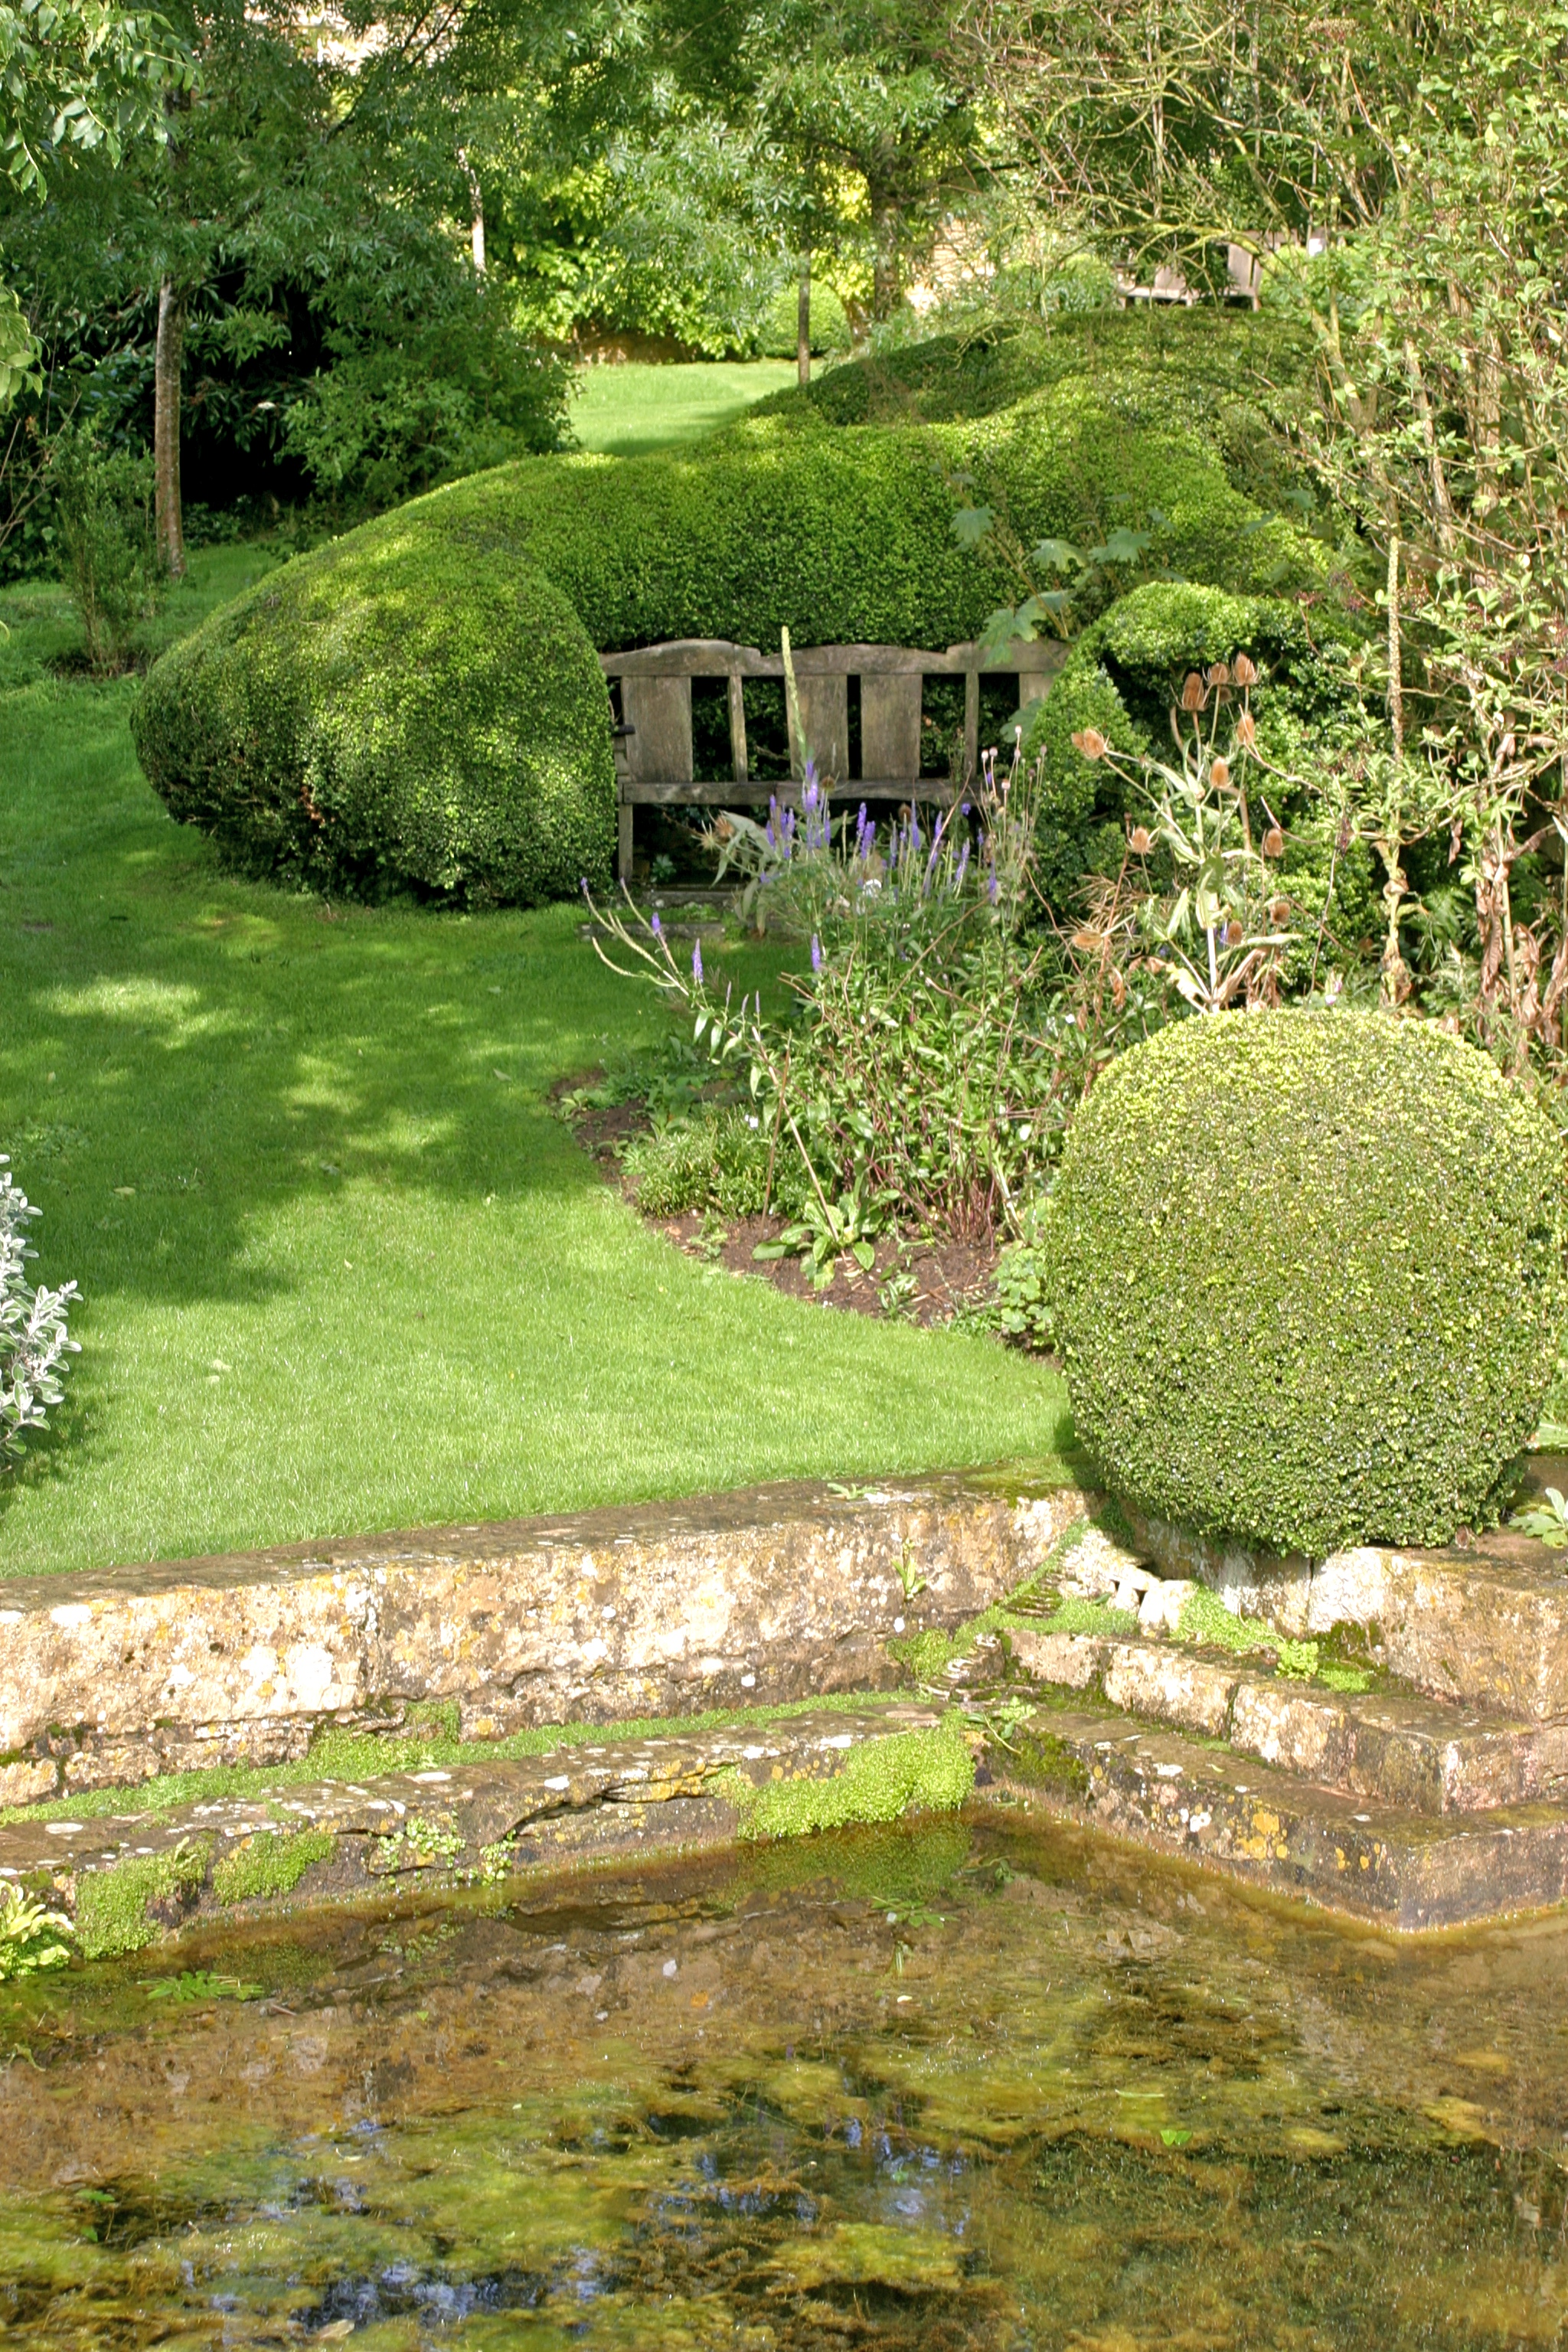 Pond and garden at Snowshill Manor